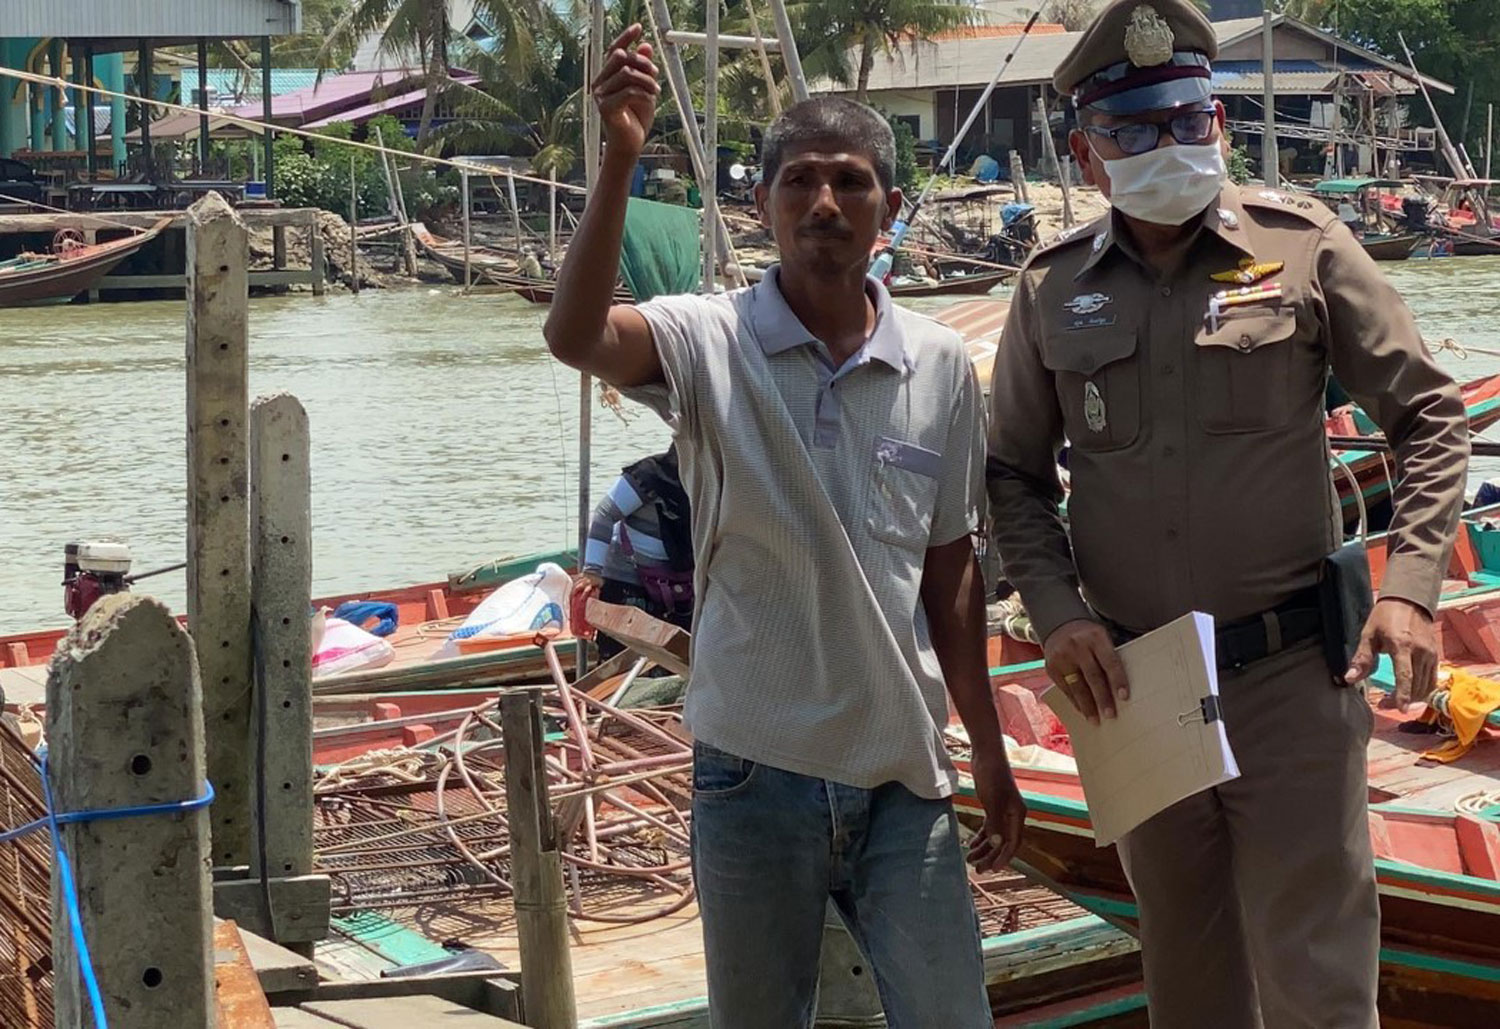 Anucha Binmusa, 46, takes a police investigator to the site where he purchased baby cockles from local fishermen in Surat Thani before three police officers allegedly tried to extort money from him. (Photo: Supapong Chaolan)